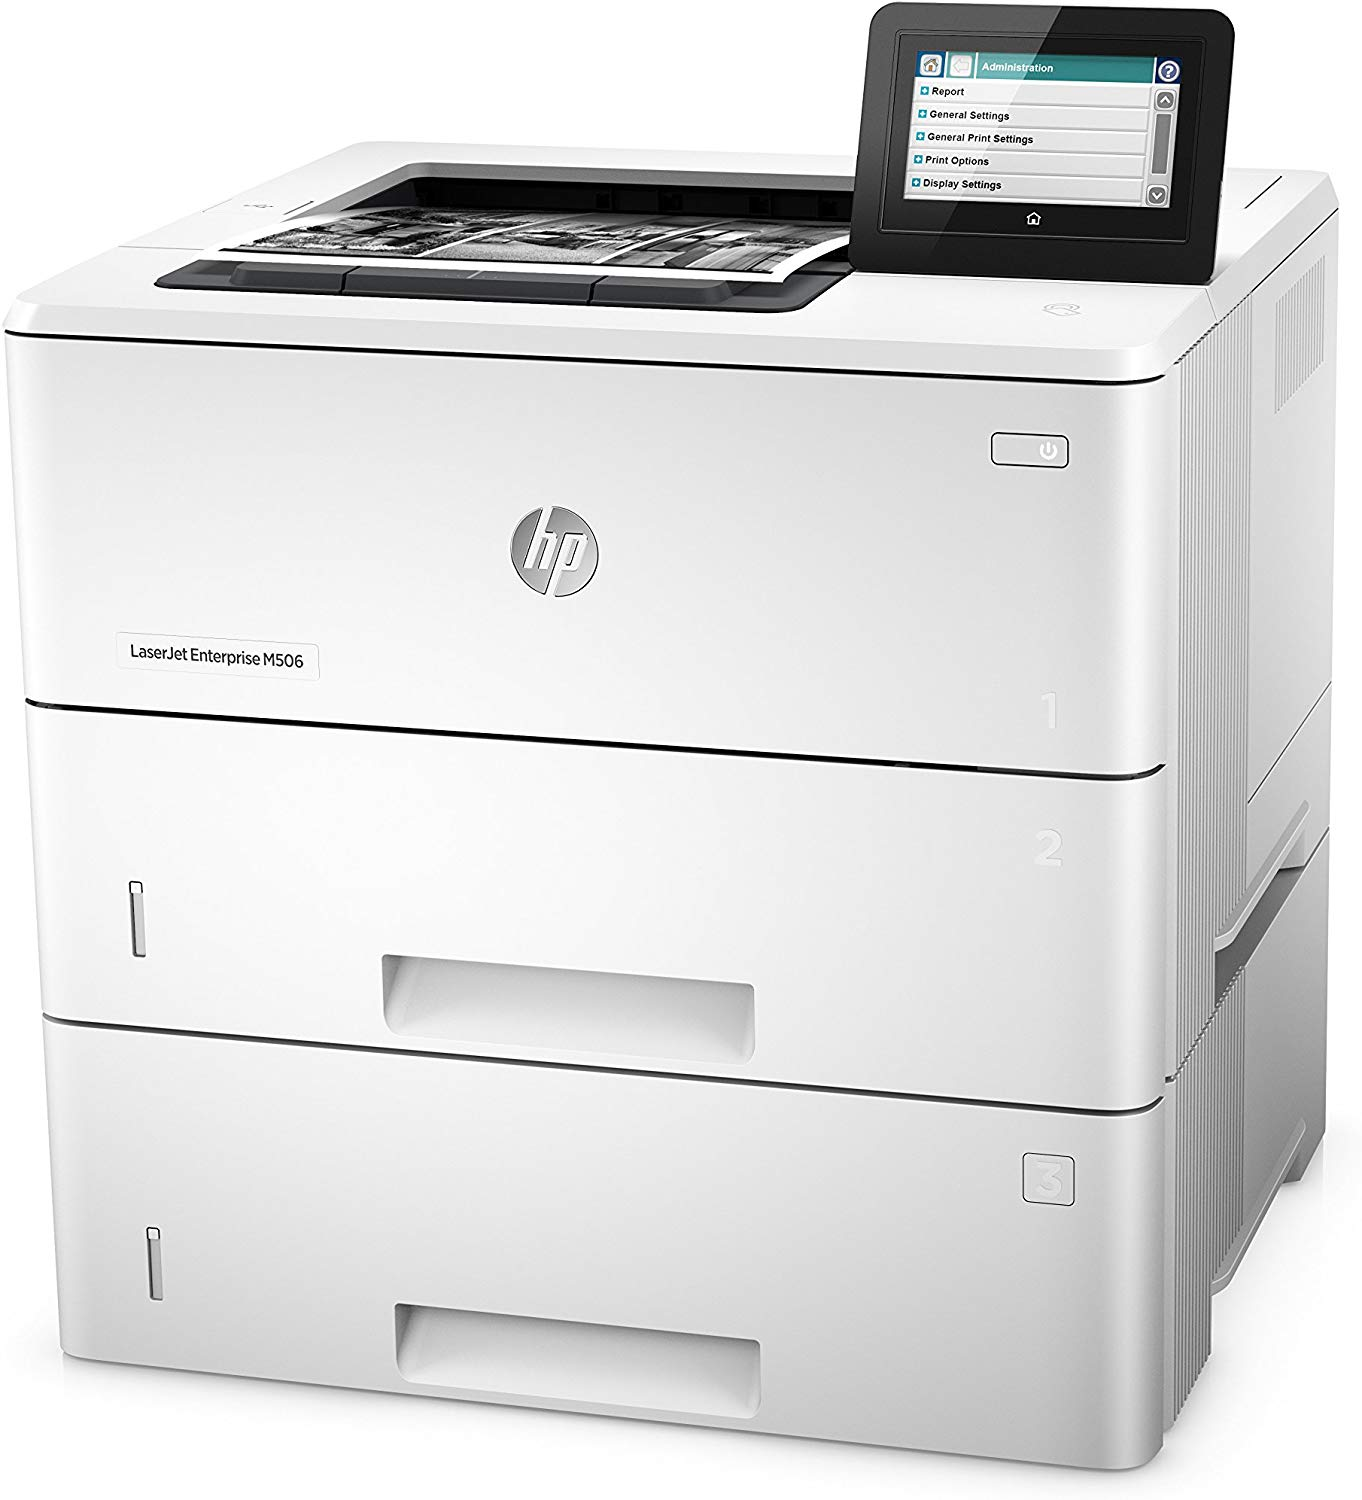 HP LaserJet Managed M506xm Mono Laser Printer, Demo (F2A67A)